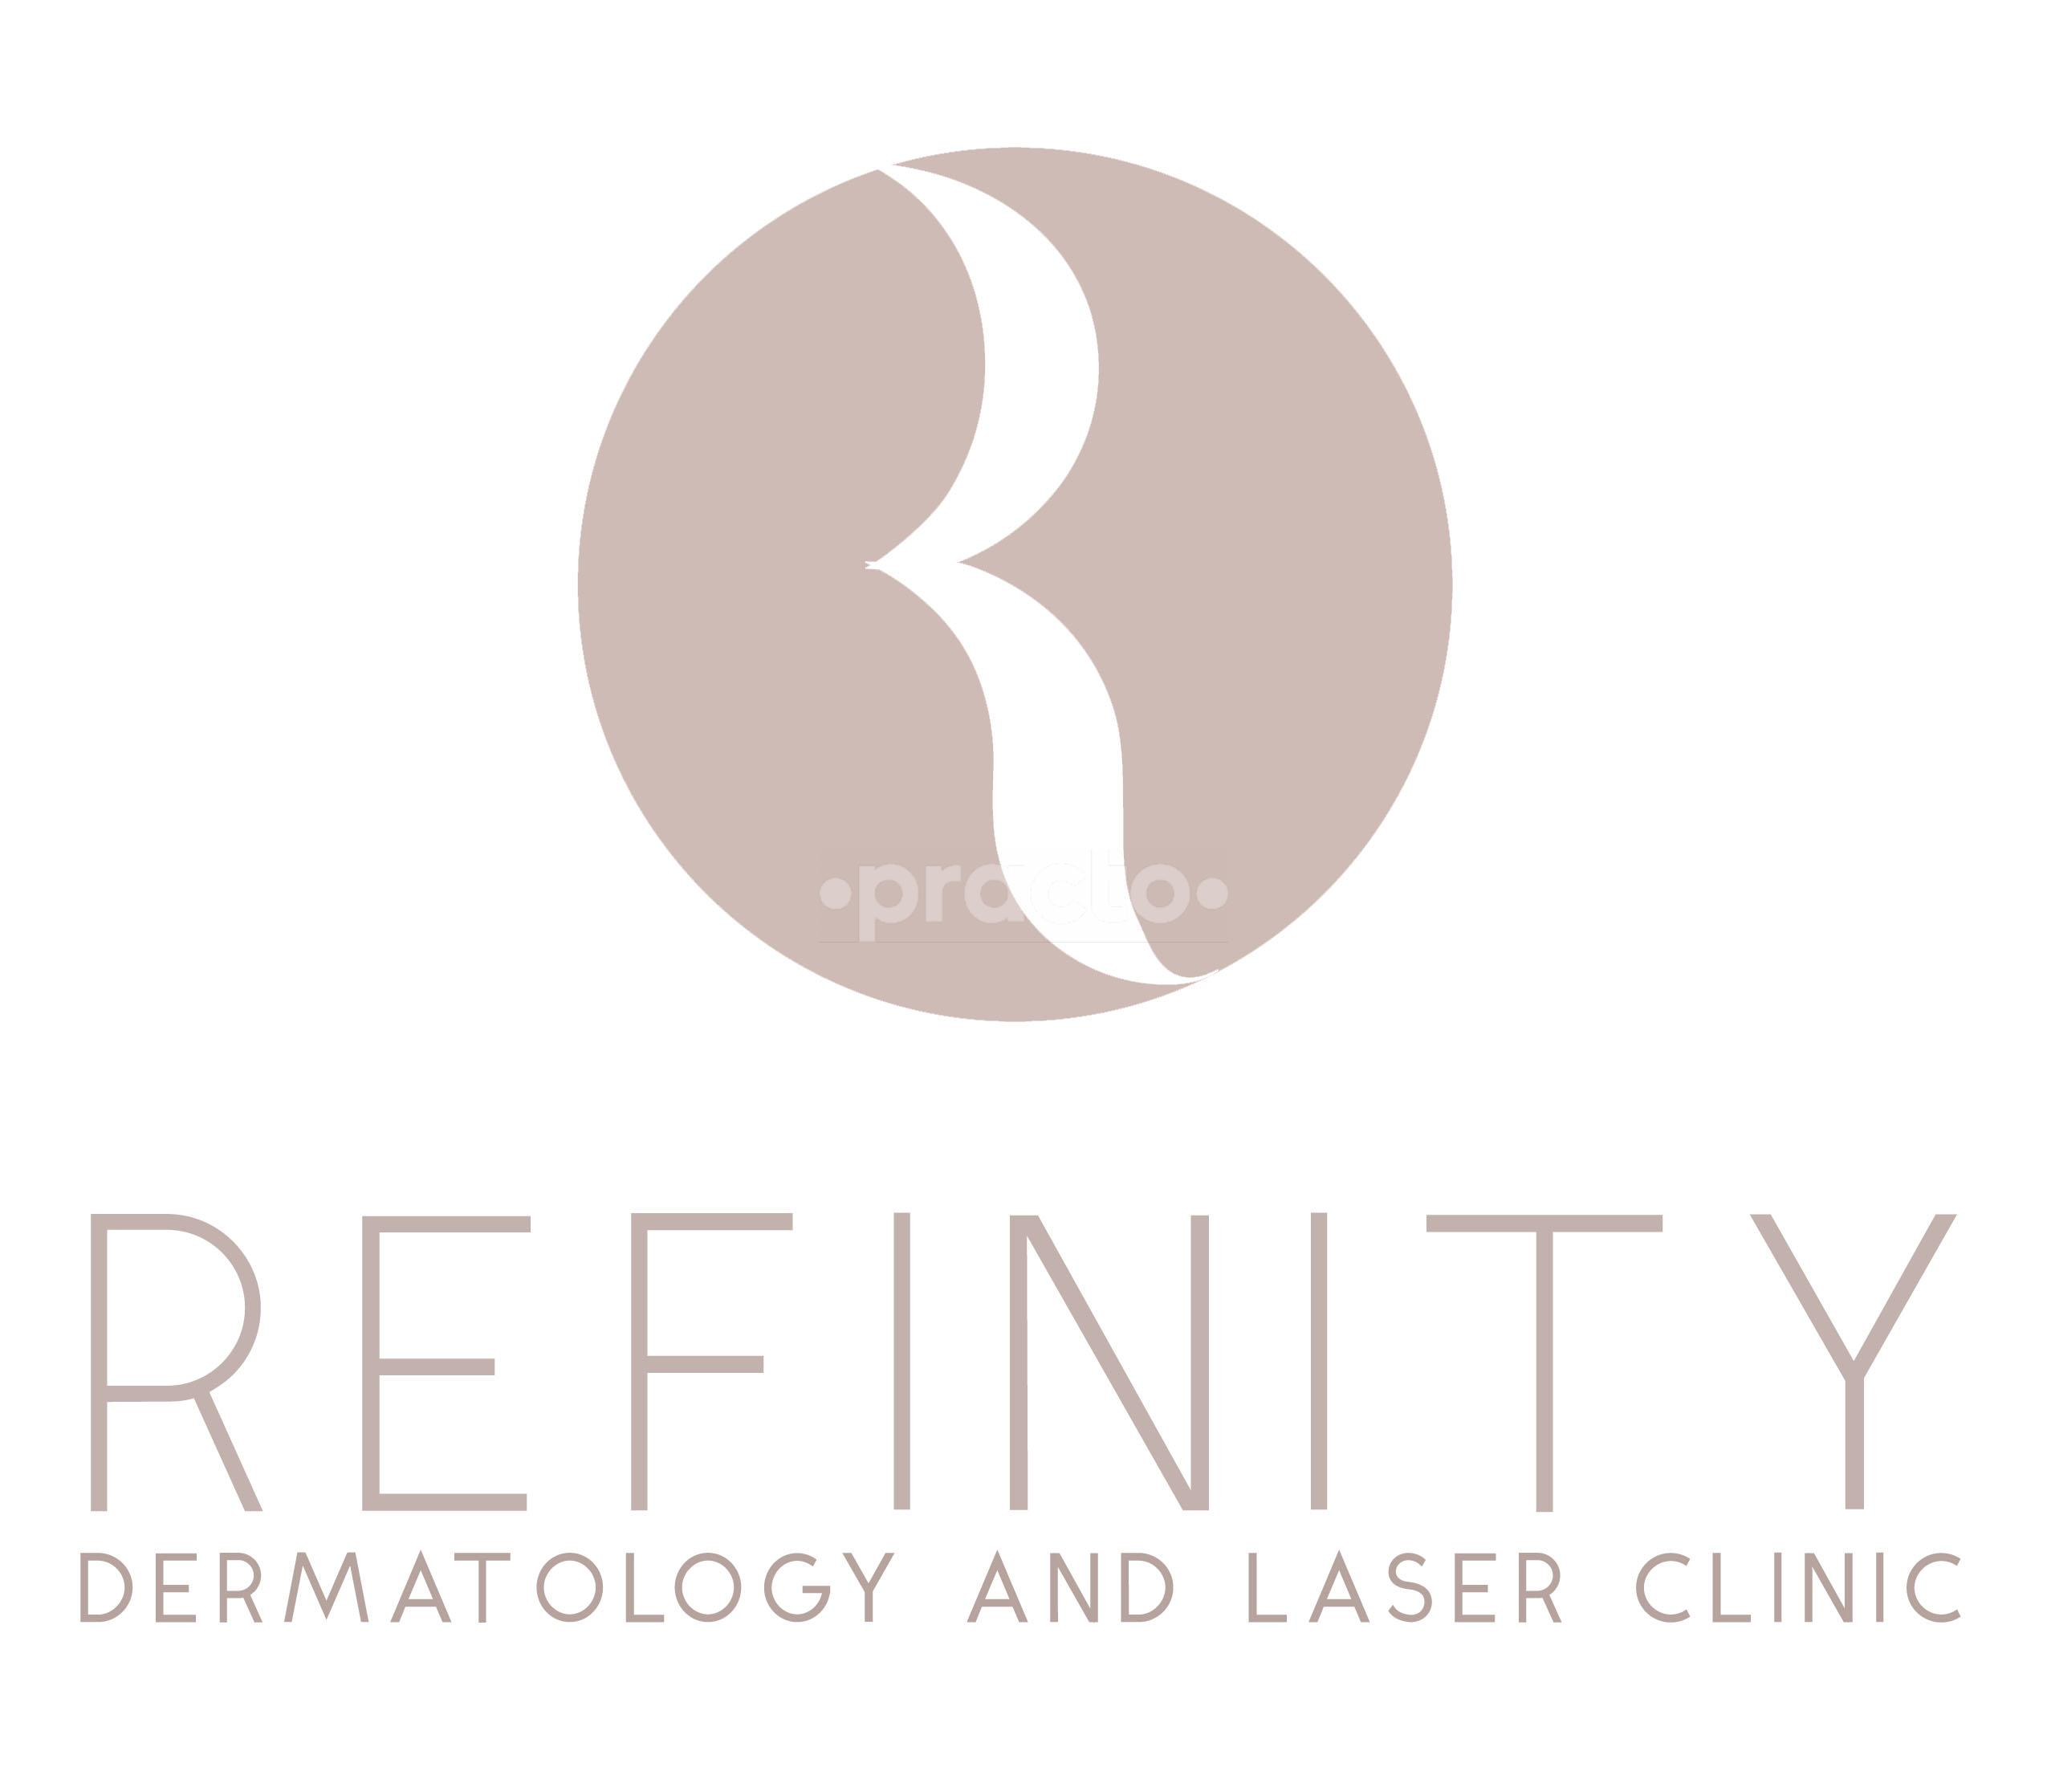 Refinity Dermatology and Laser Clinic